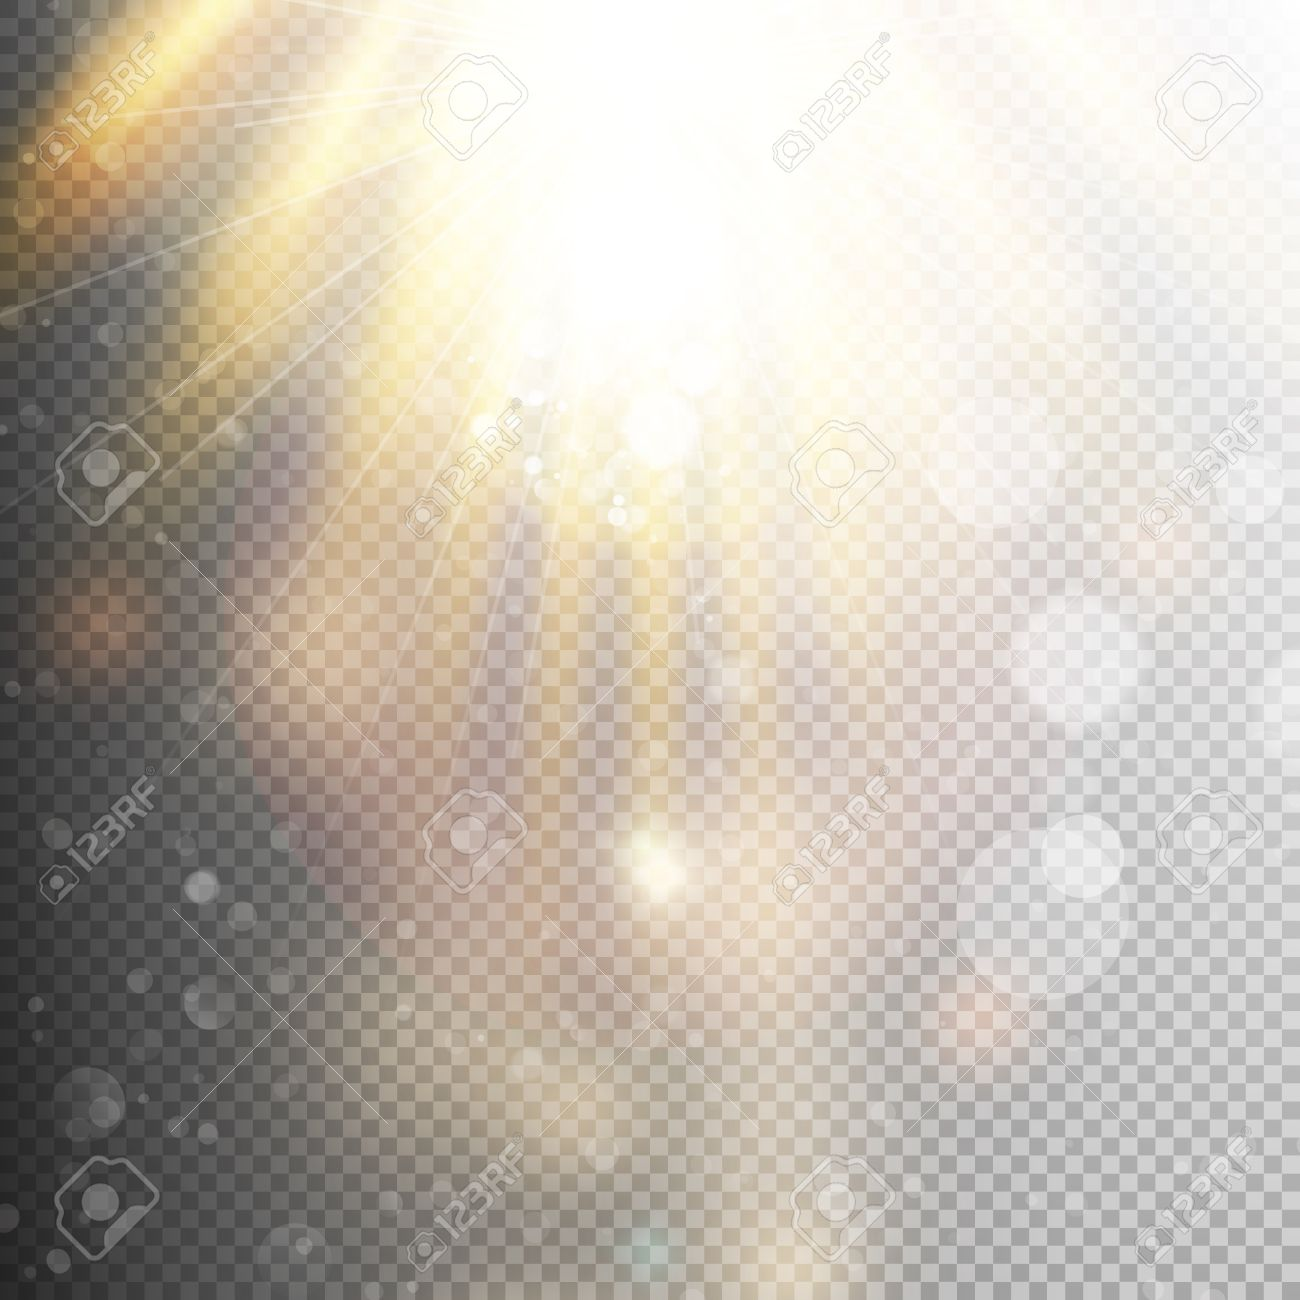 Yellow Warm Light Effect, Sun Rays, Beams On Transparent ... for Sun Light Effect Background  146hul